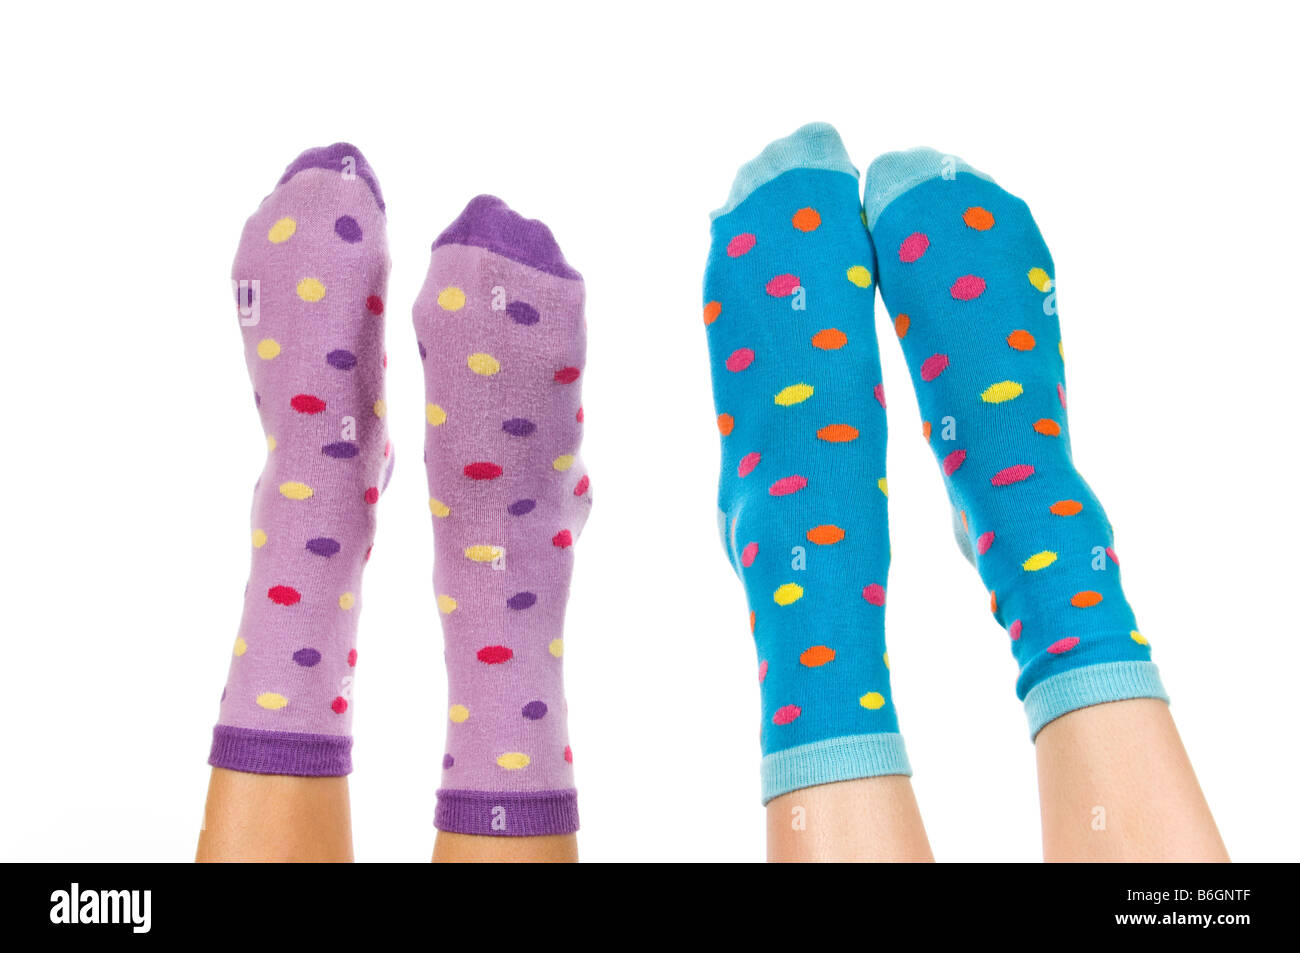 Horizontal close up portrait of two pairs of pointed feet wearing spotty socks in the air against a white background - Stock Image